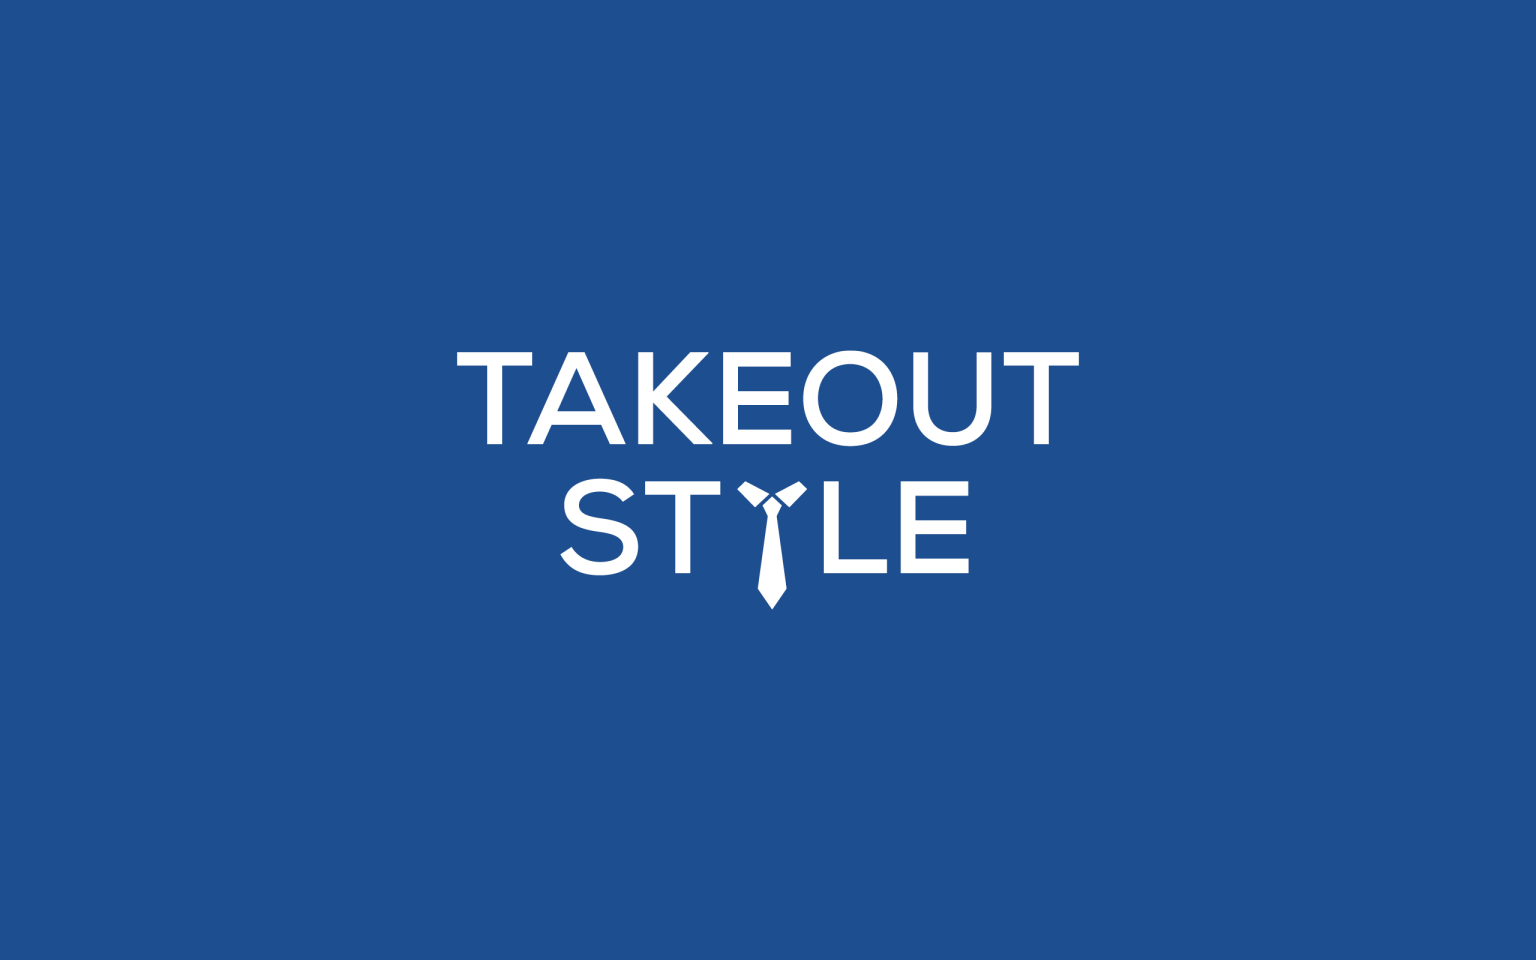 Takeout Style